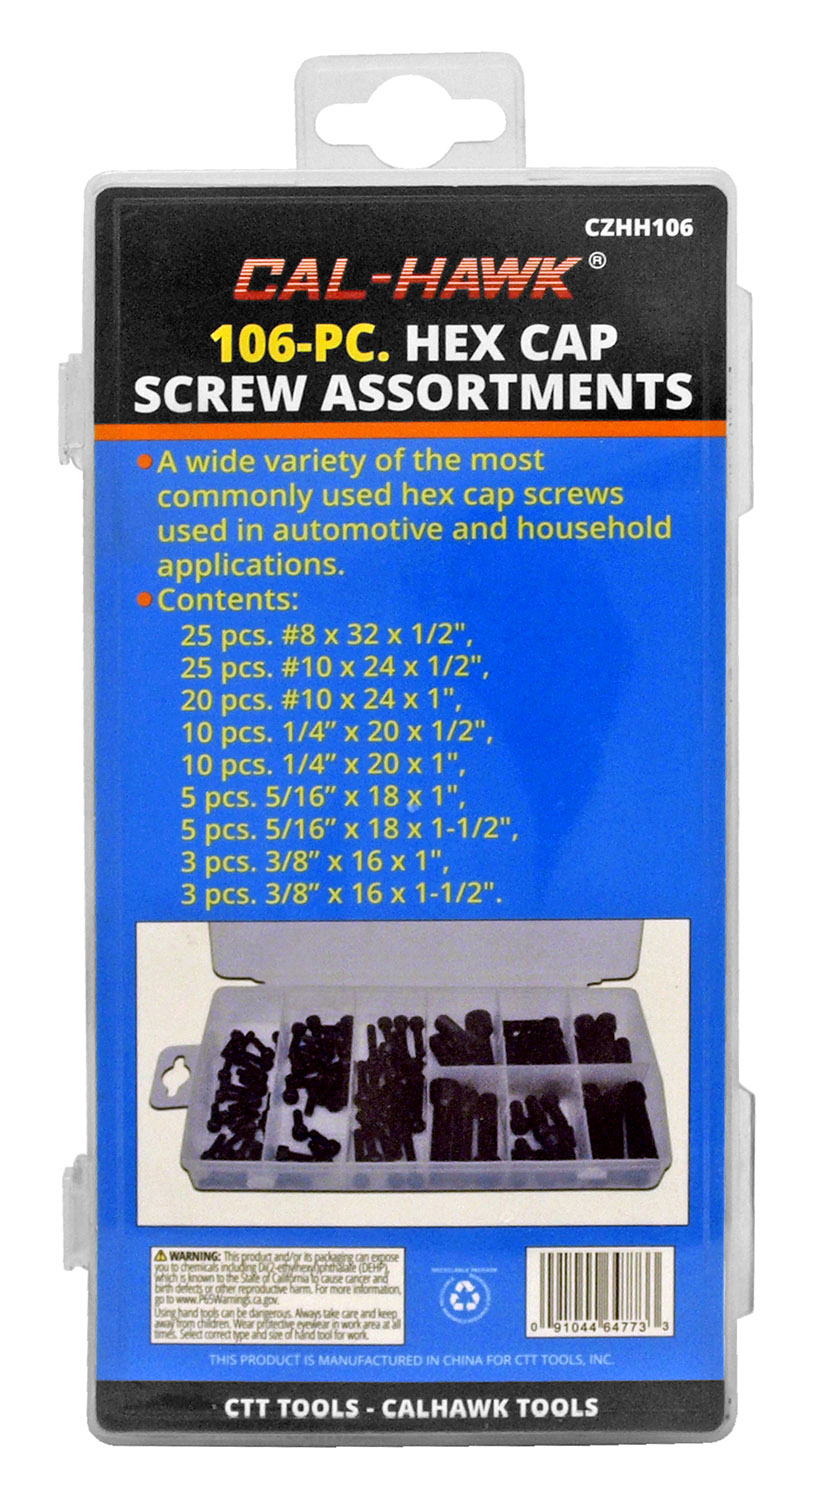 Cal-Hawk 106 - pc. Hex Cap Screw Assortments